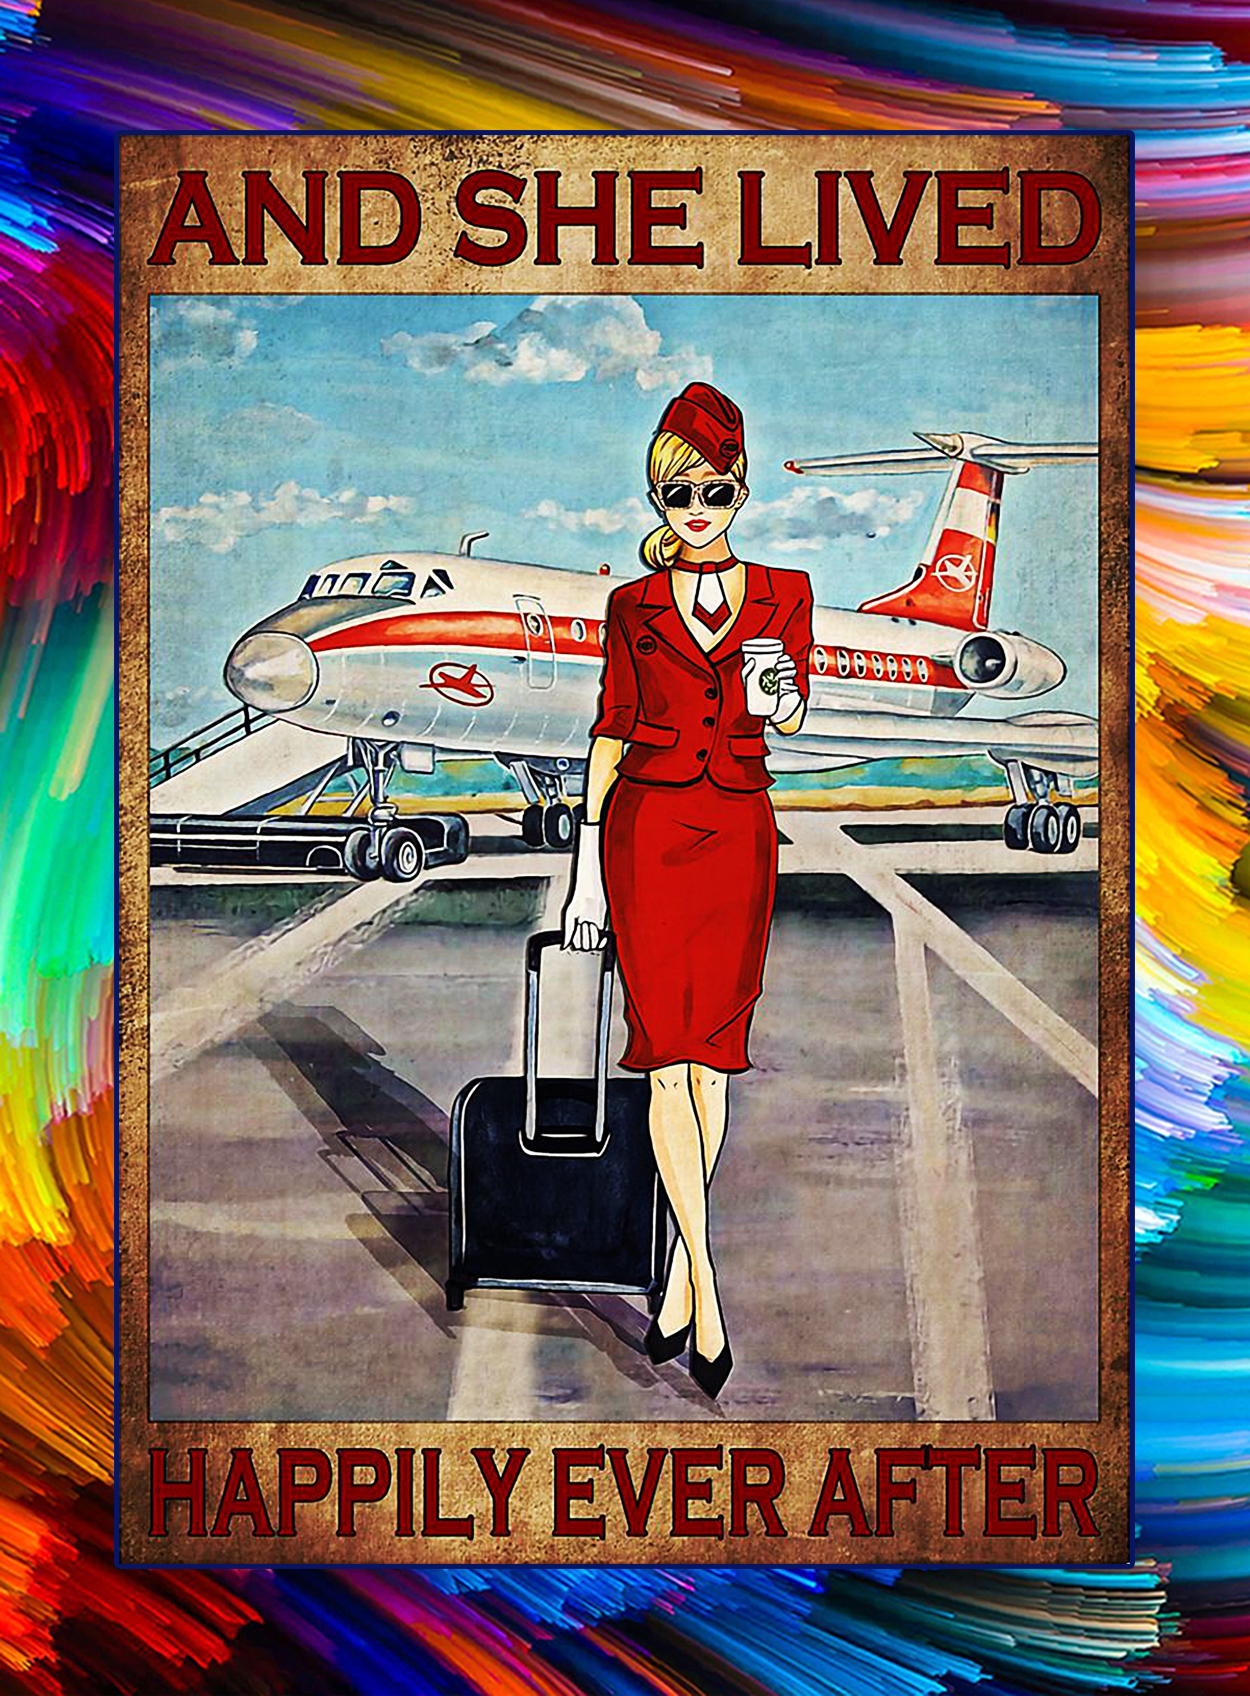 FLIGHT ATTENDANT SOME GIRLS ARE JUST BORN WITH THE SKY IN THEIR SOULS POSTER - A2